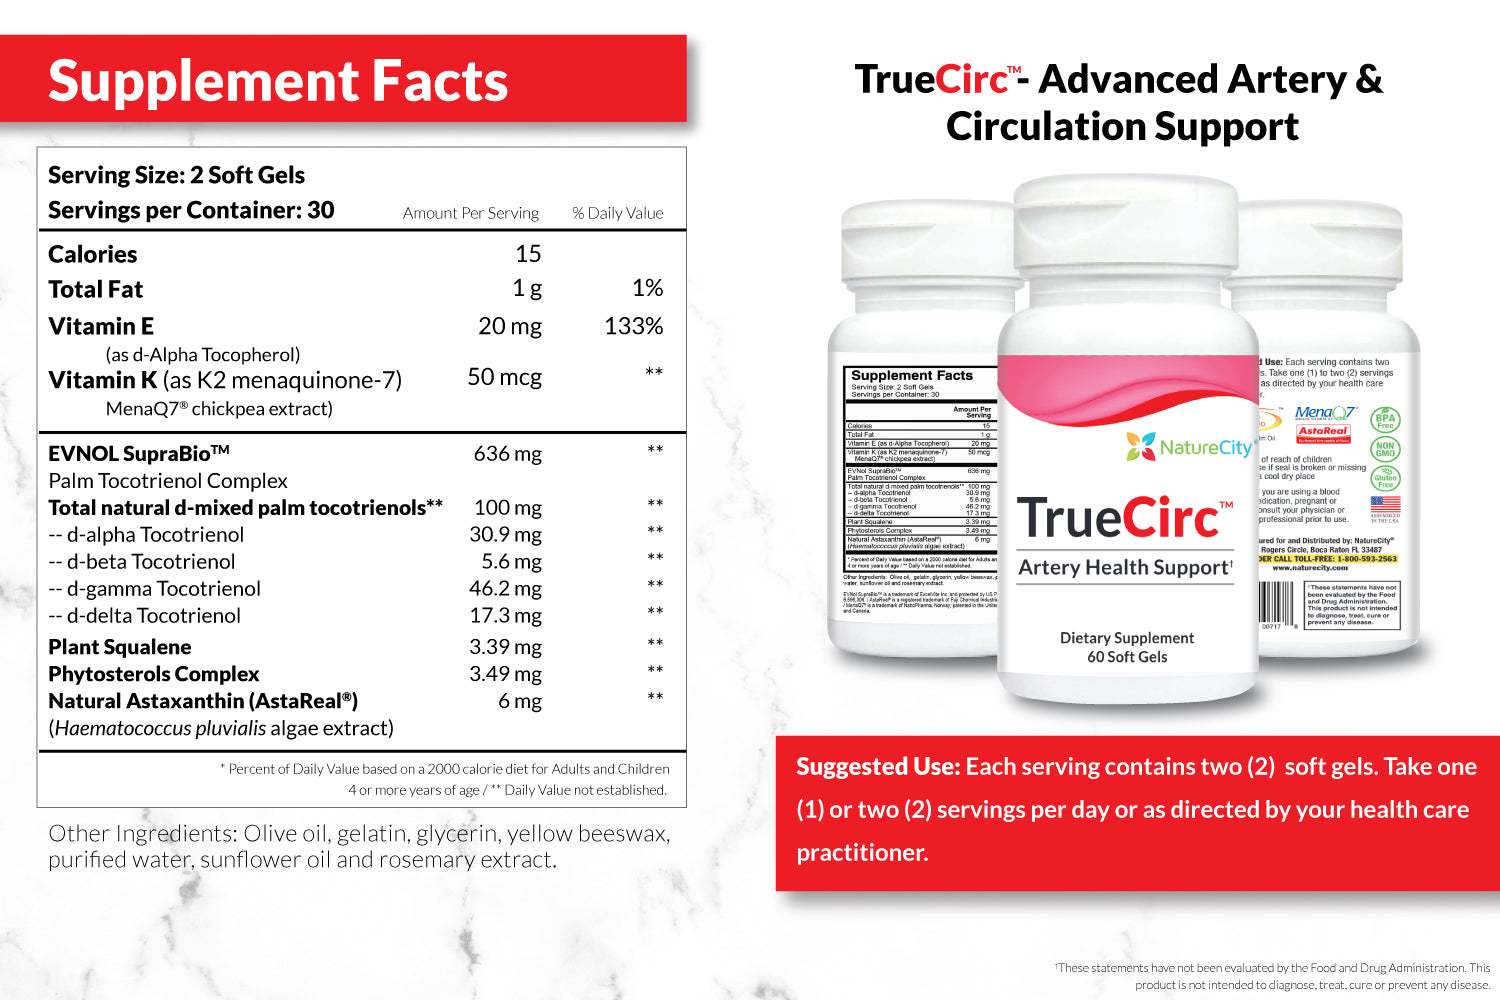 TrueCirc Supplement Facts and Suggested Use